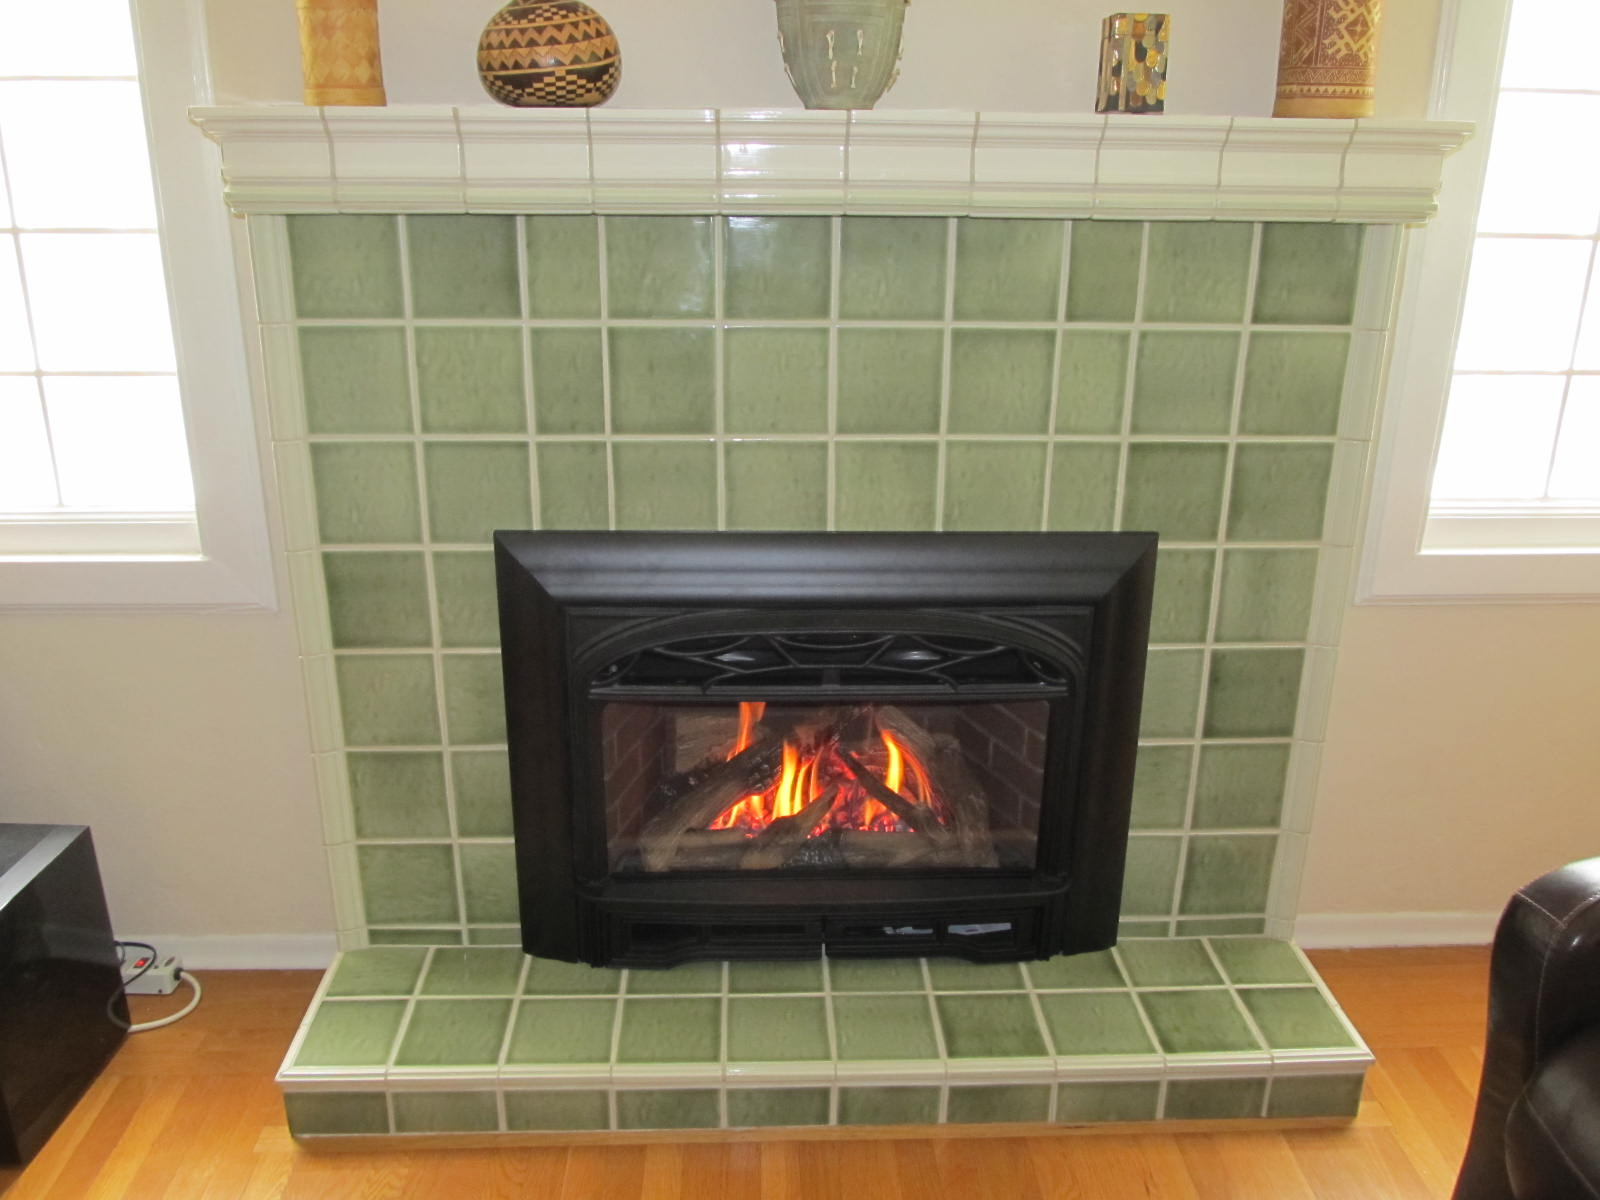 tile over brick fireplace charming fireplace rh charmingfireplace com